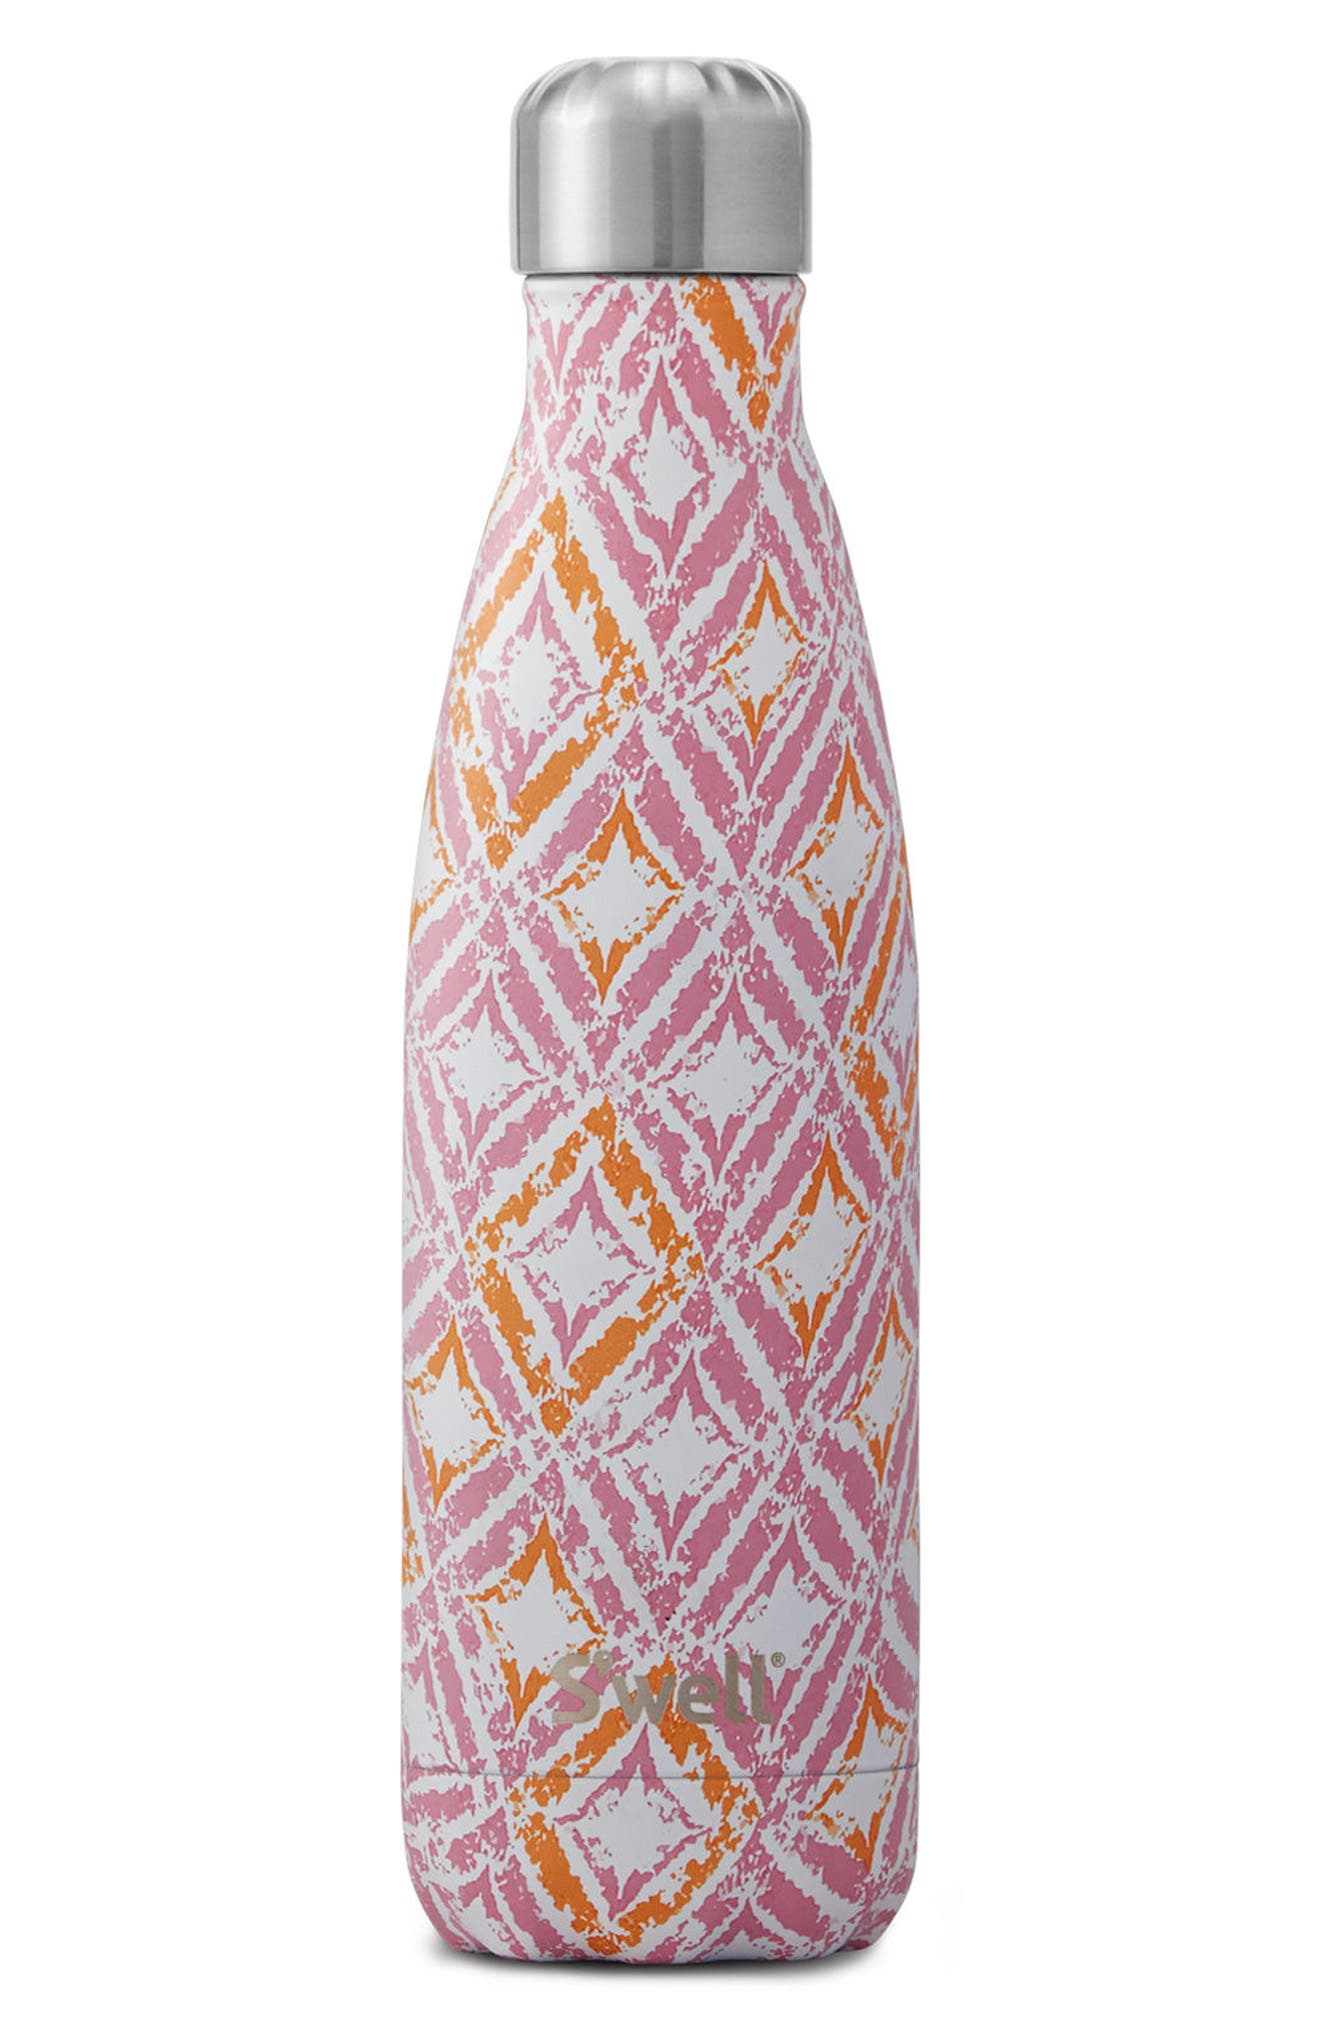 Alternate Image 1 Selected - S'well Odisha Insulated Stainless Steel Water Bottle